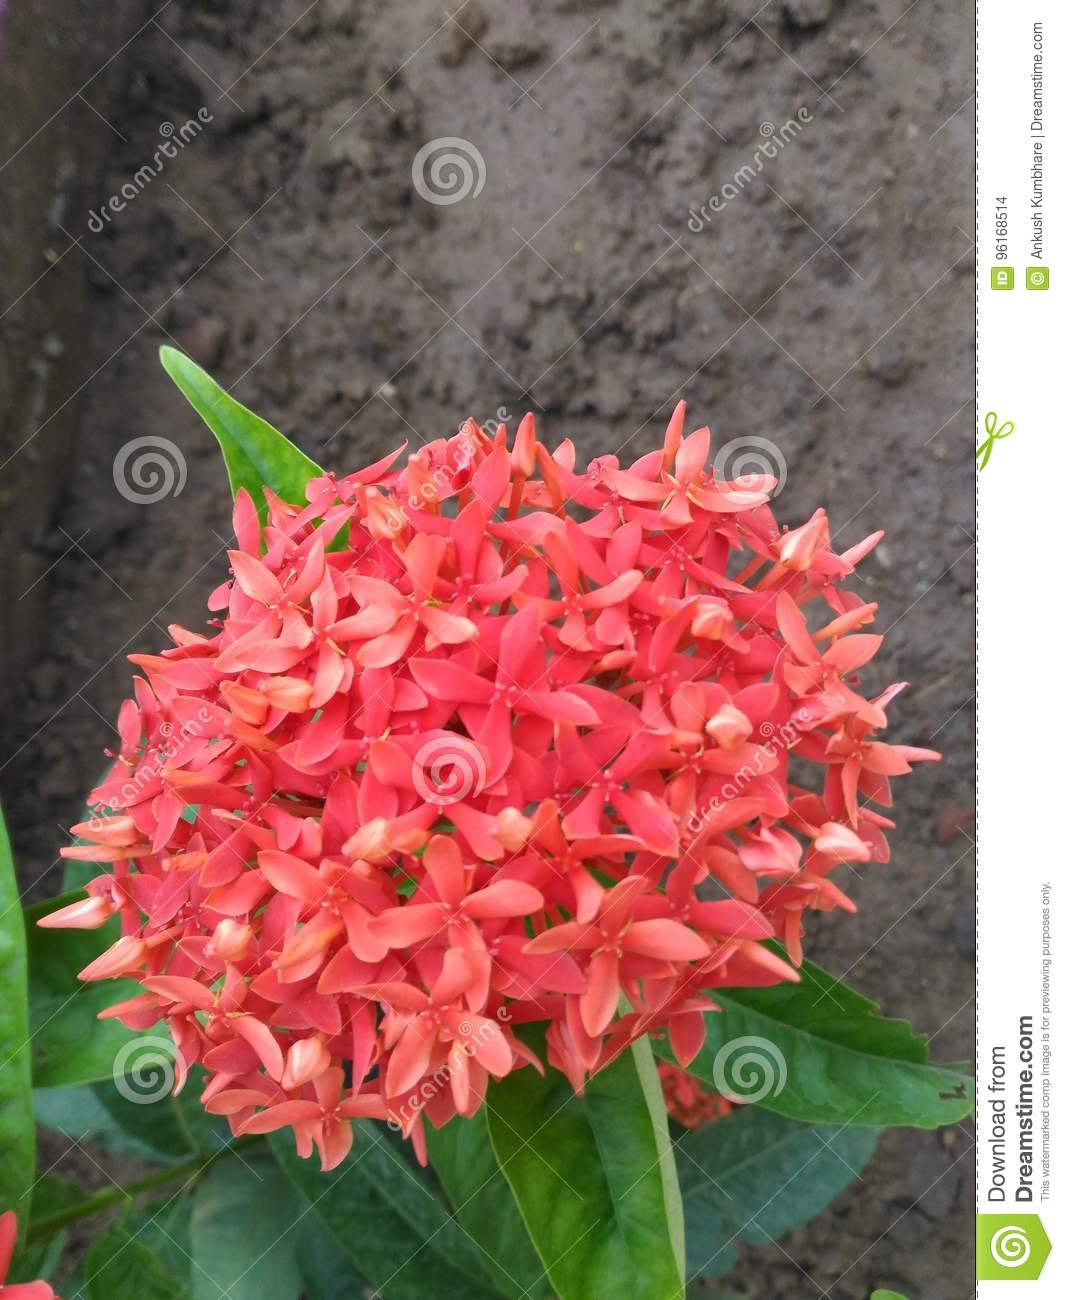 Unique Ixora Red Flowers Blooming in the same Plant in Garden